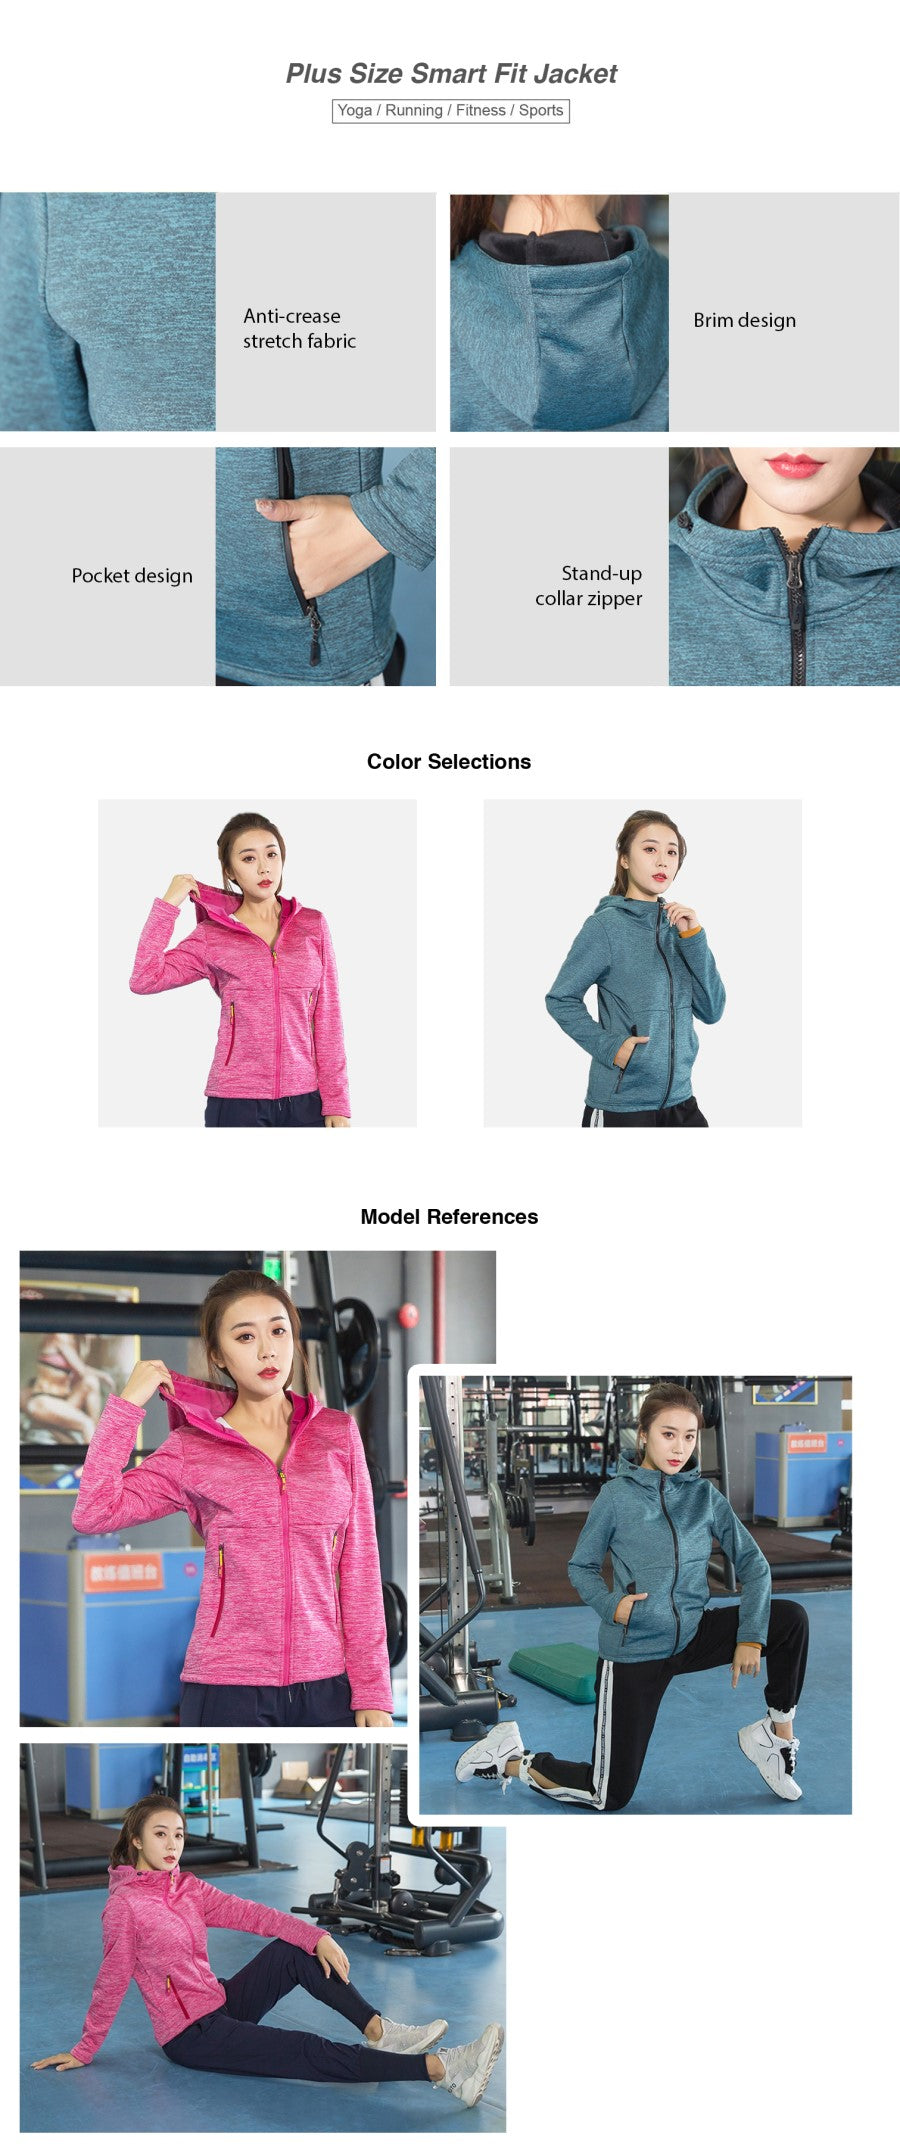 Plus Size Smart Fit Jacket